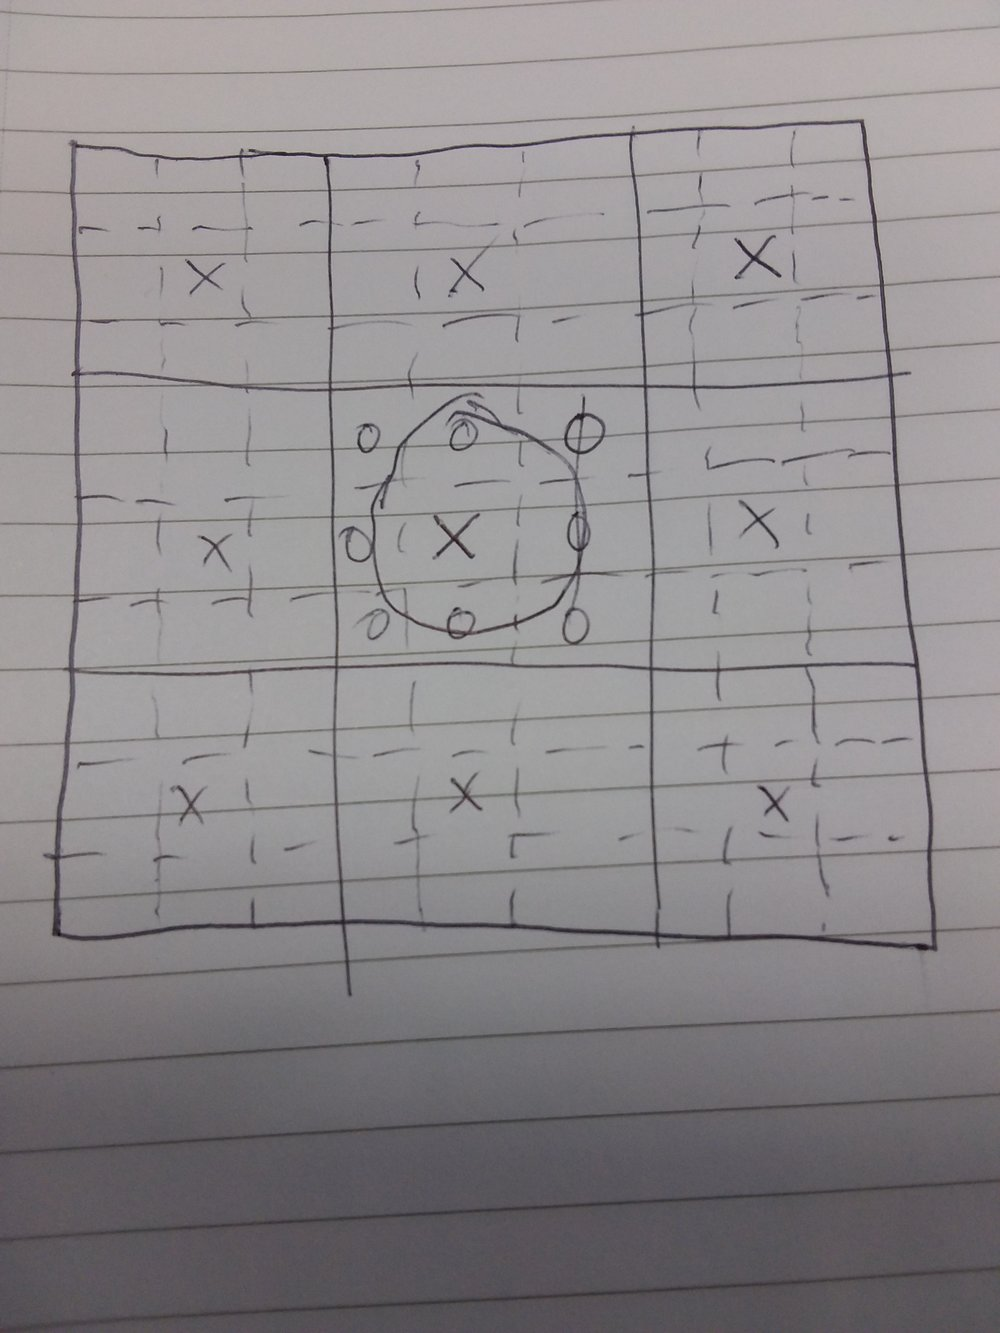 Claiming the middles of 8 of the large squares at the cost of the entire centre large square. A possibly good strategy.